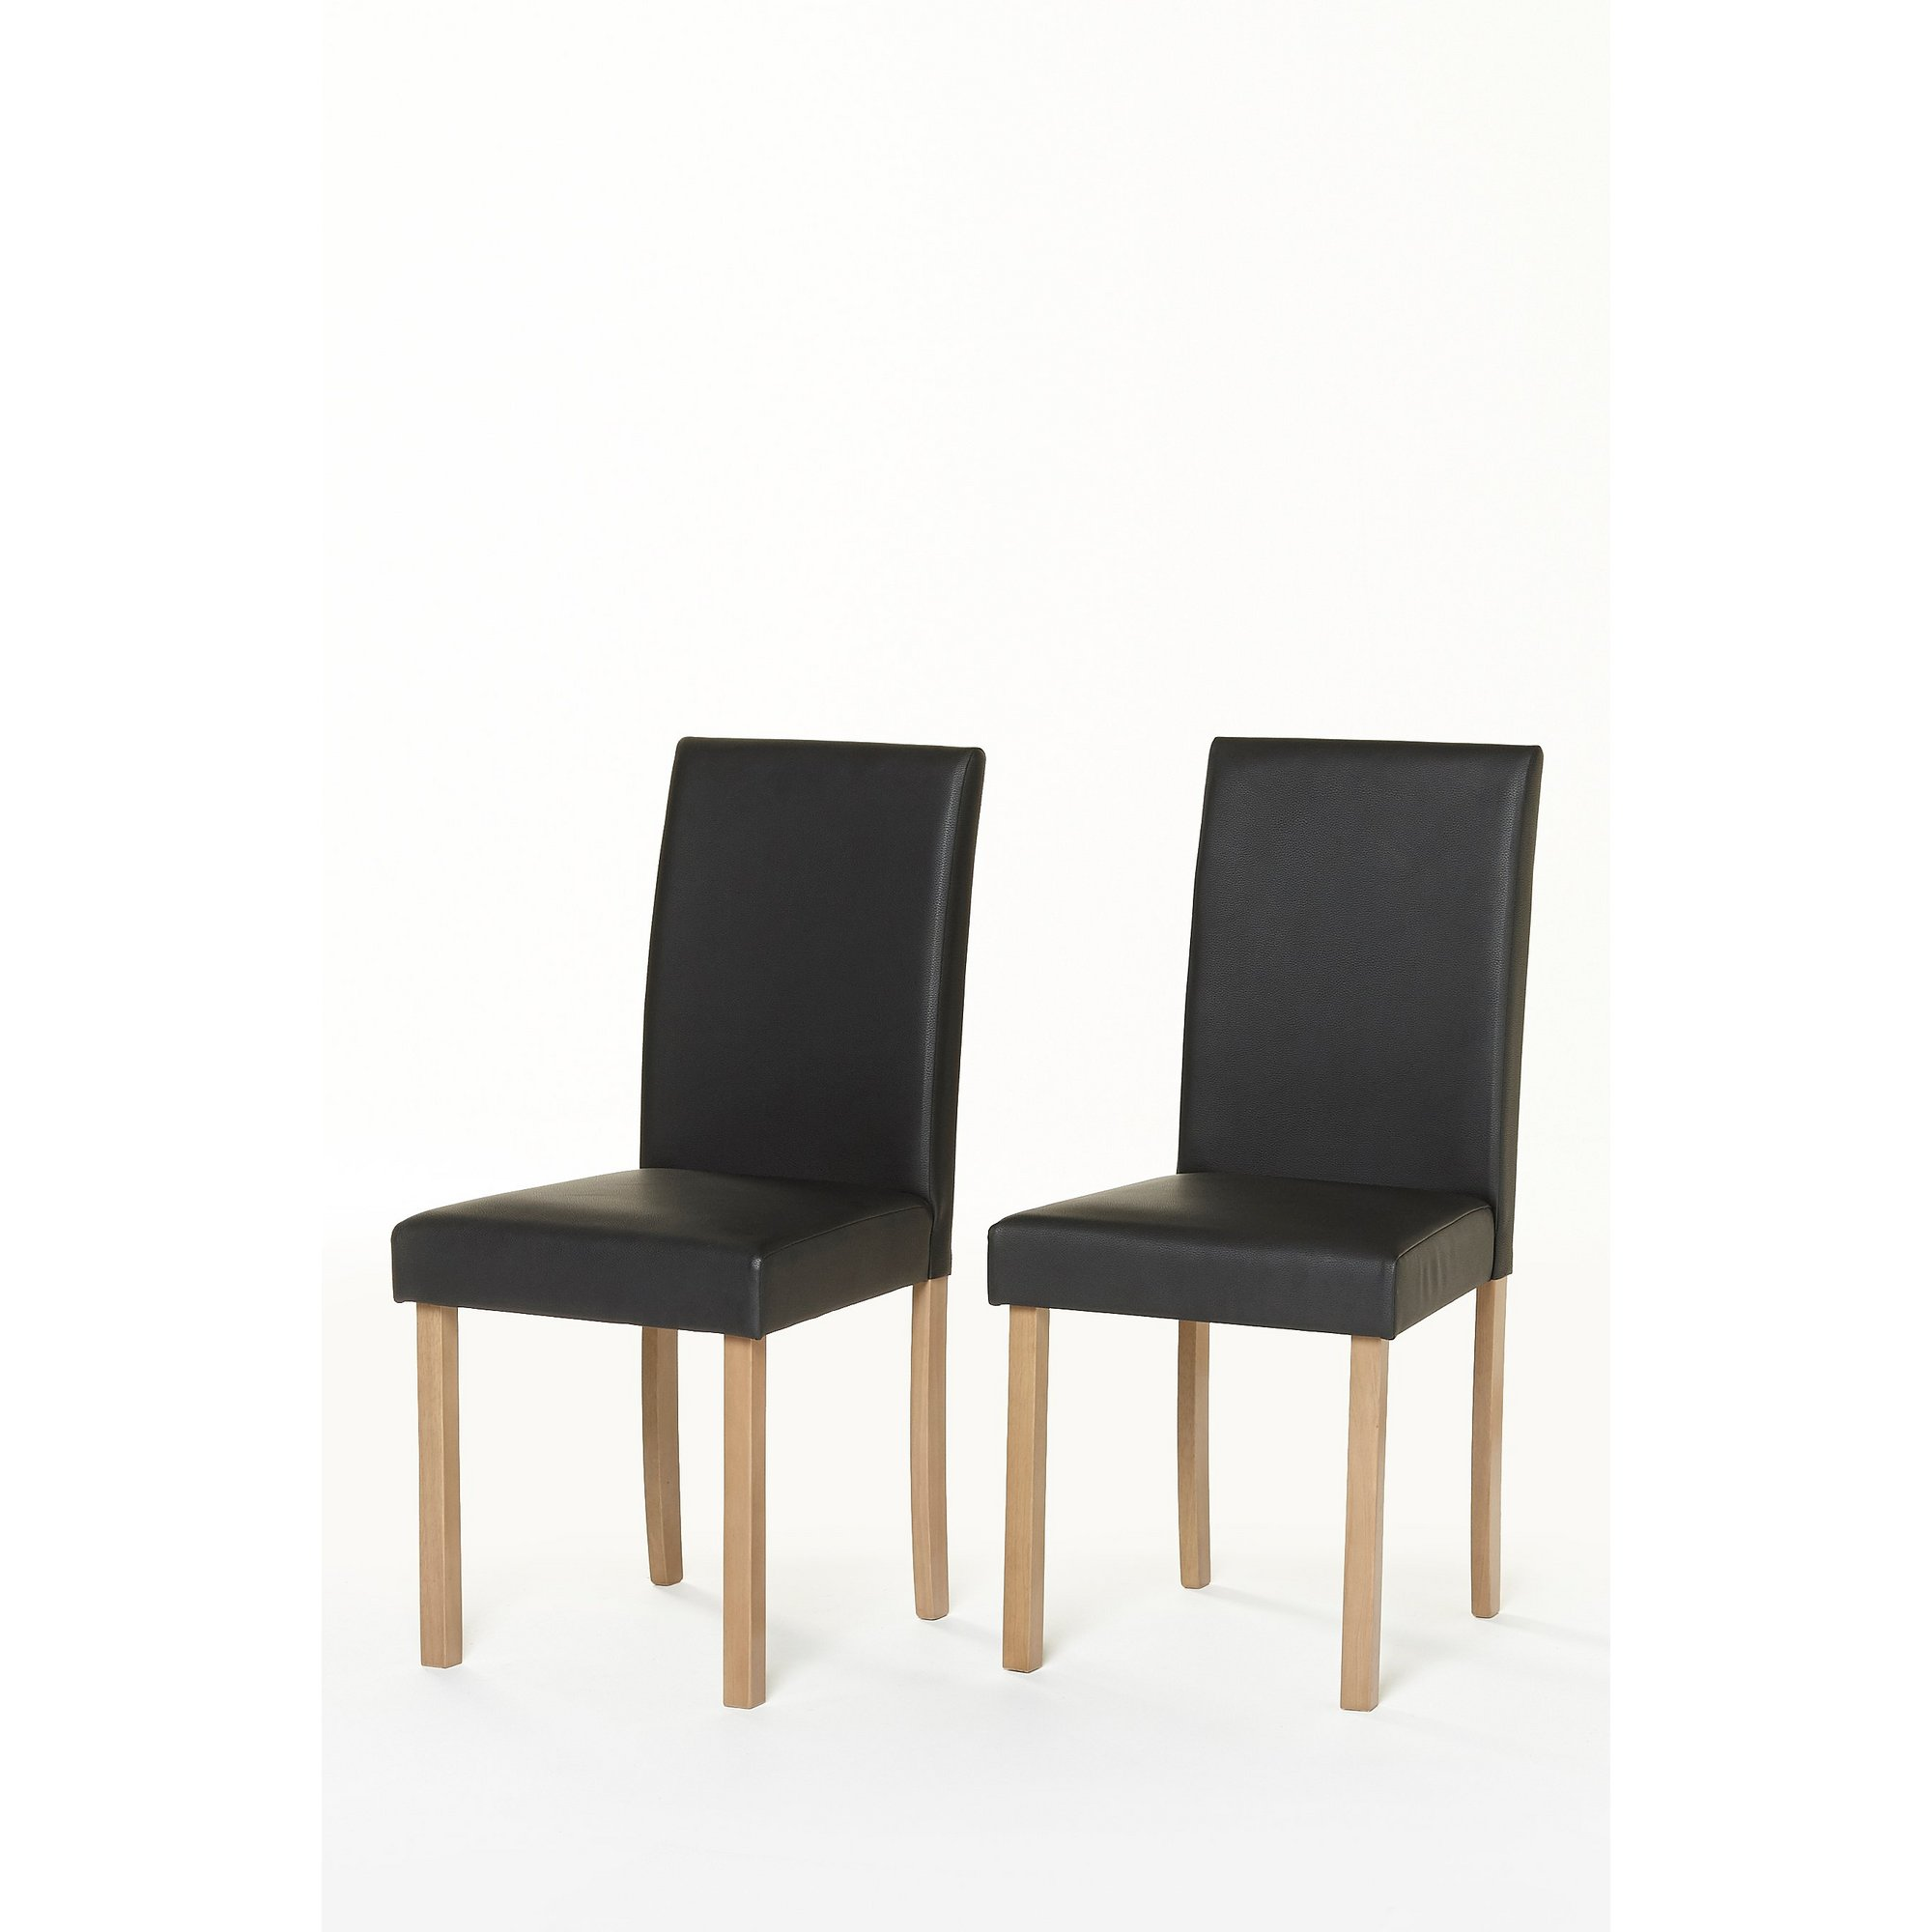 Image of Pair of Kingston Chairs - Faux Leather